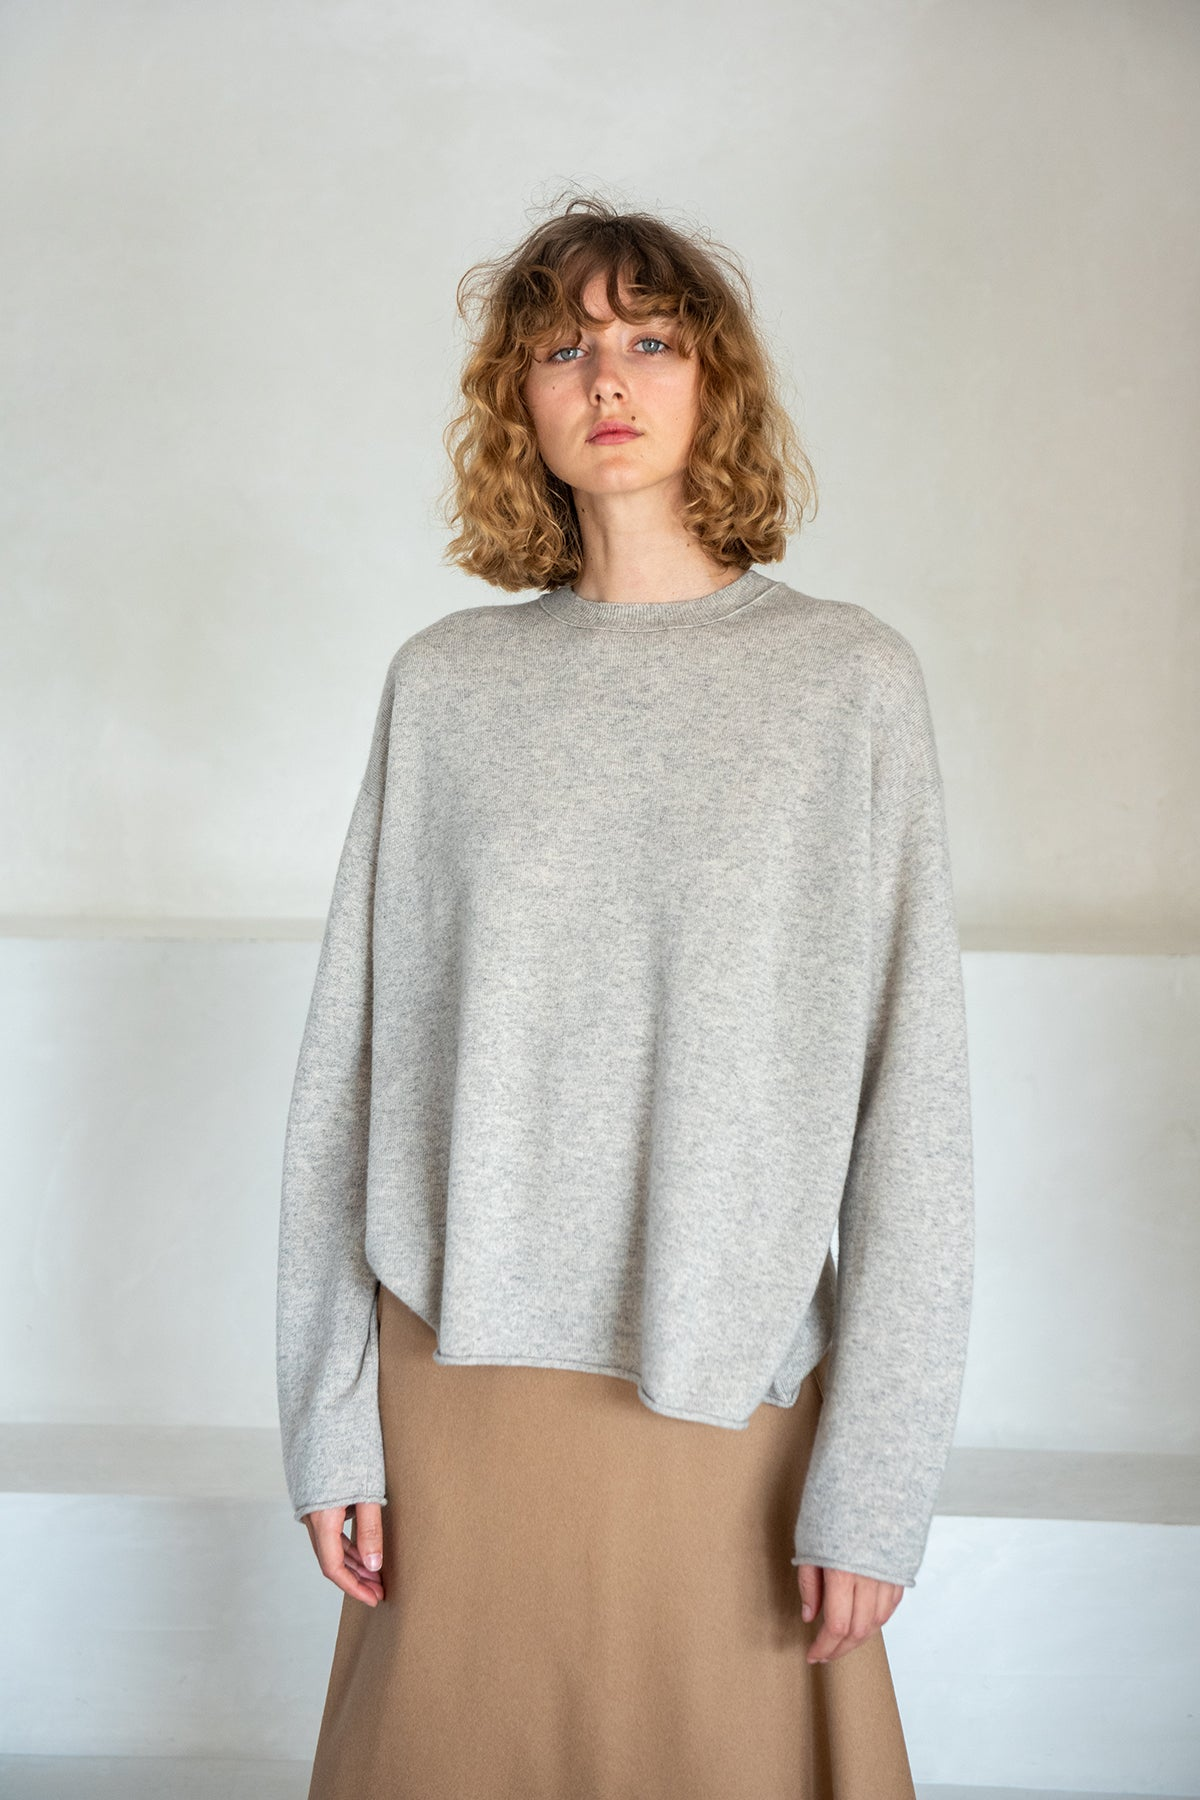 Sofie D'Hoore - MUNCH crewneck sweater, silver